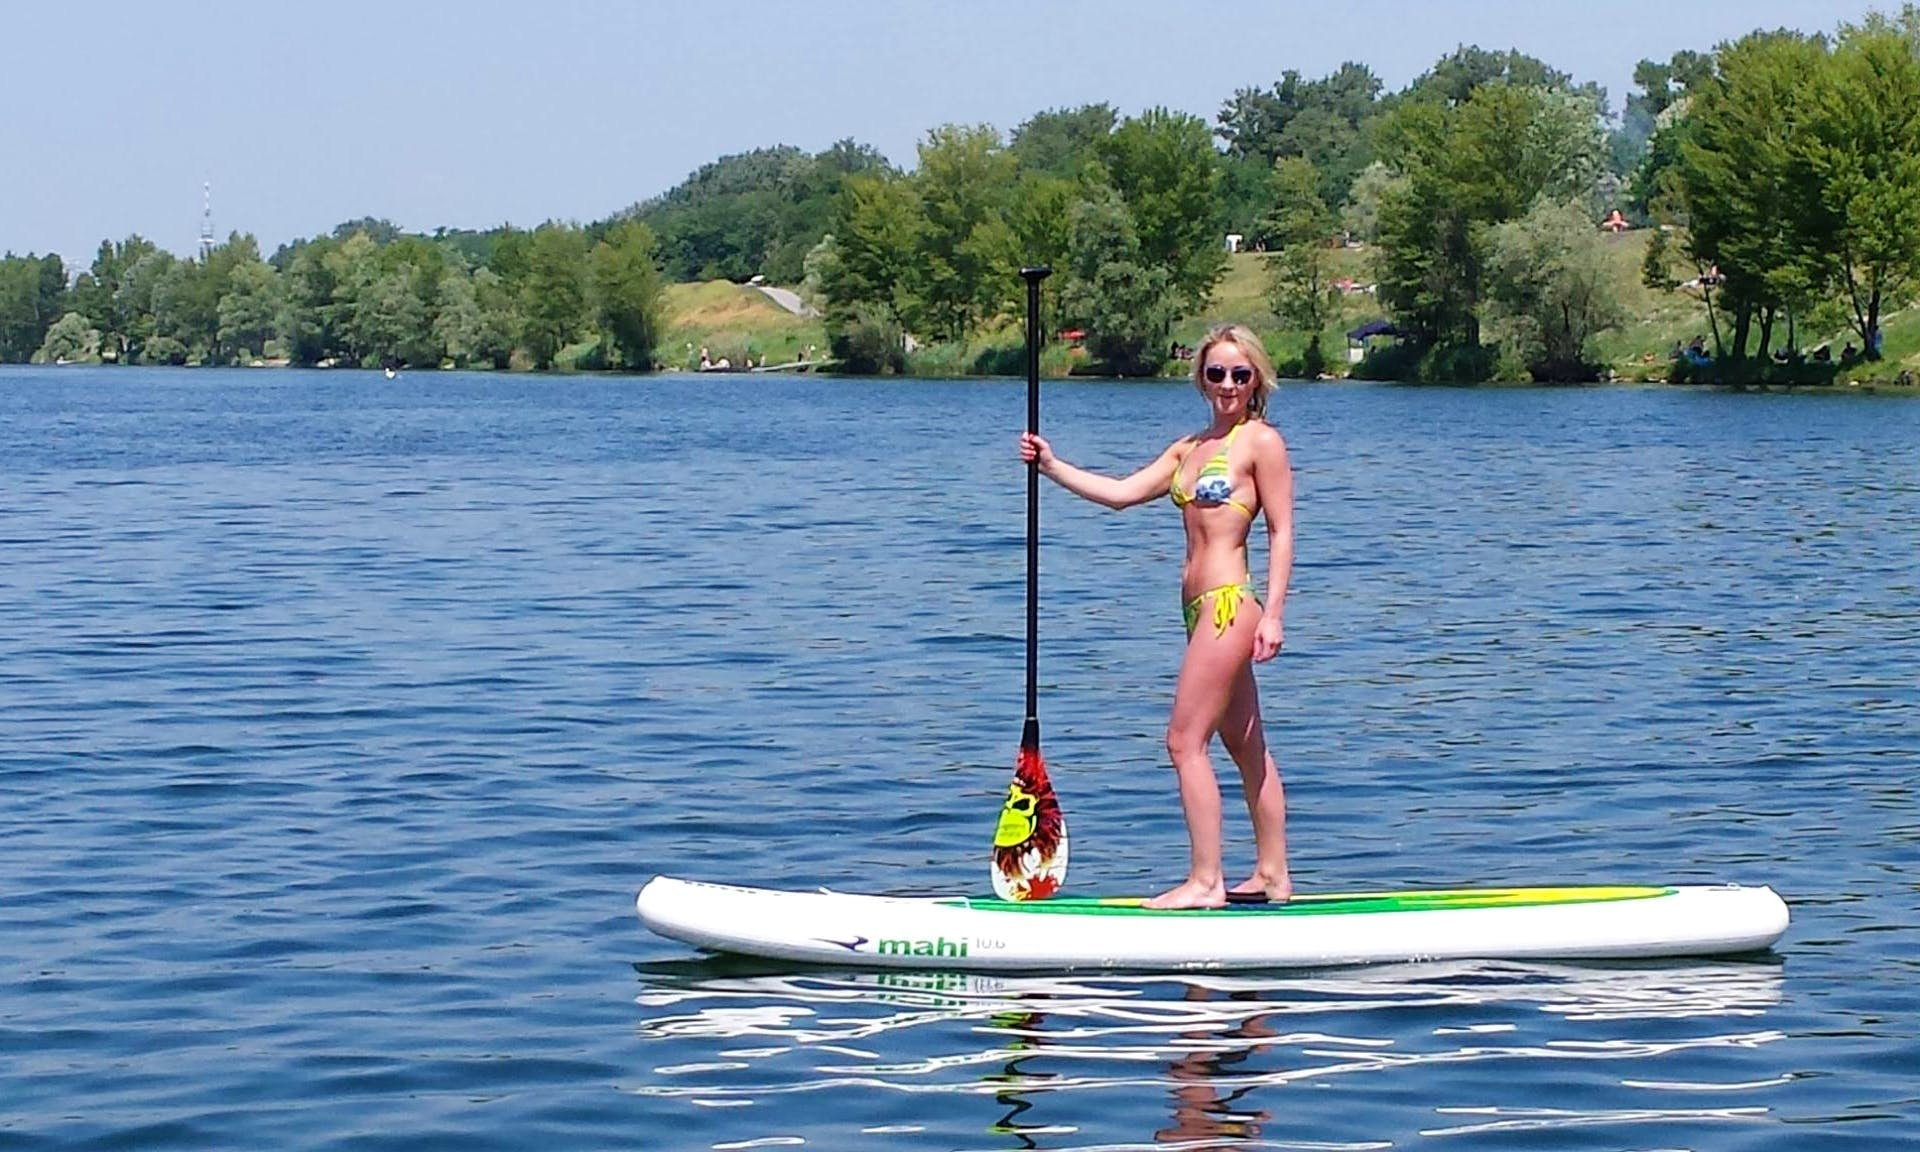 Paddleboard Rental in Wien, Austria